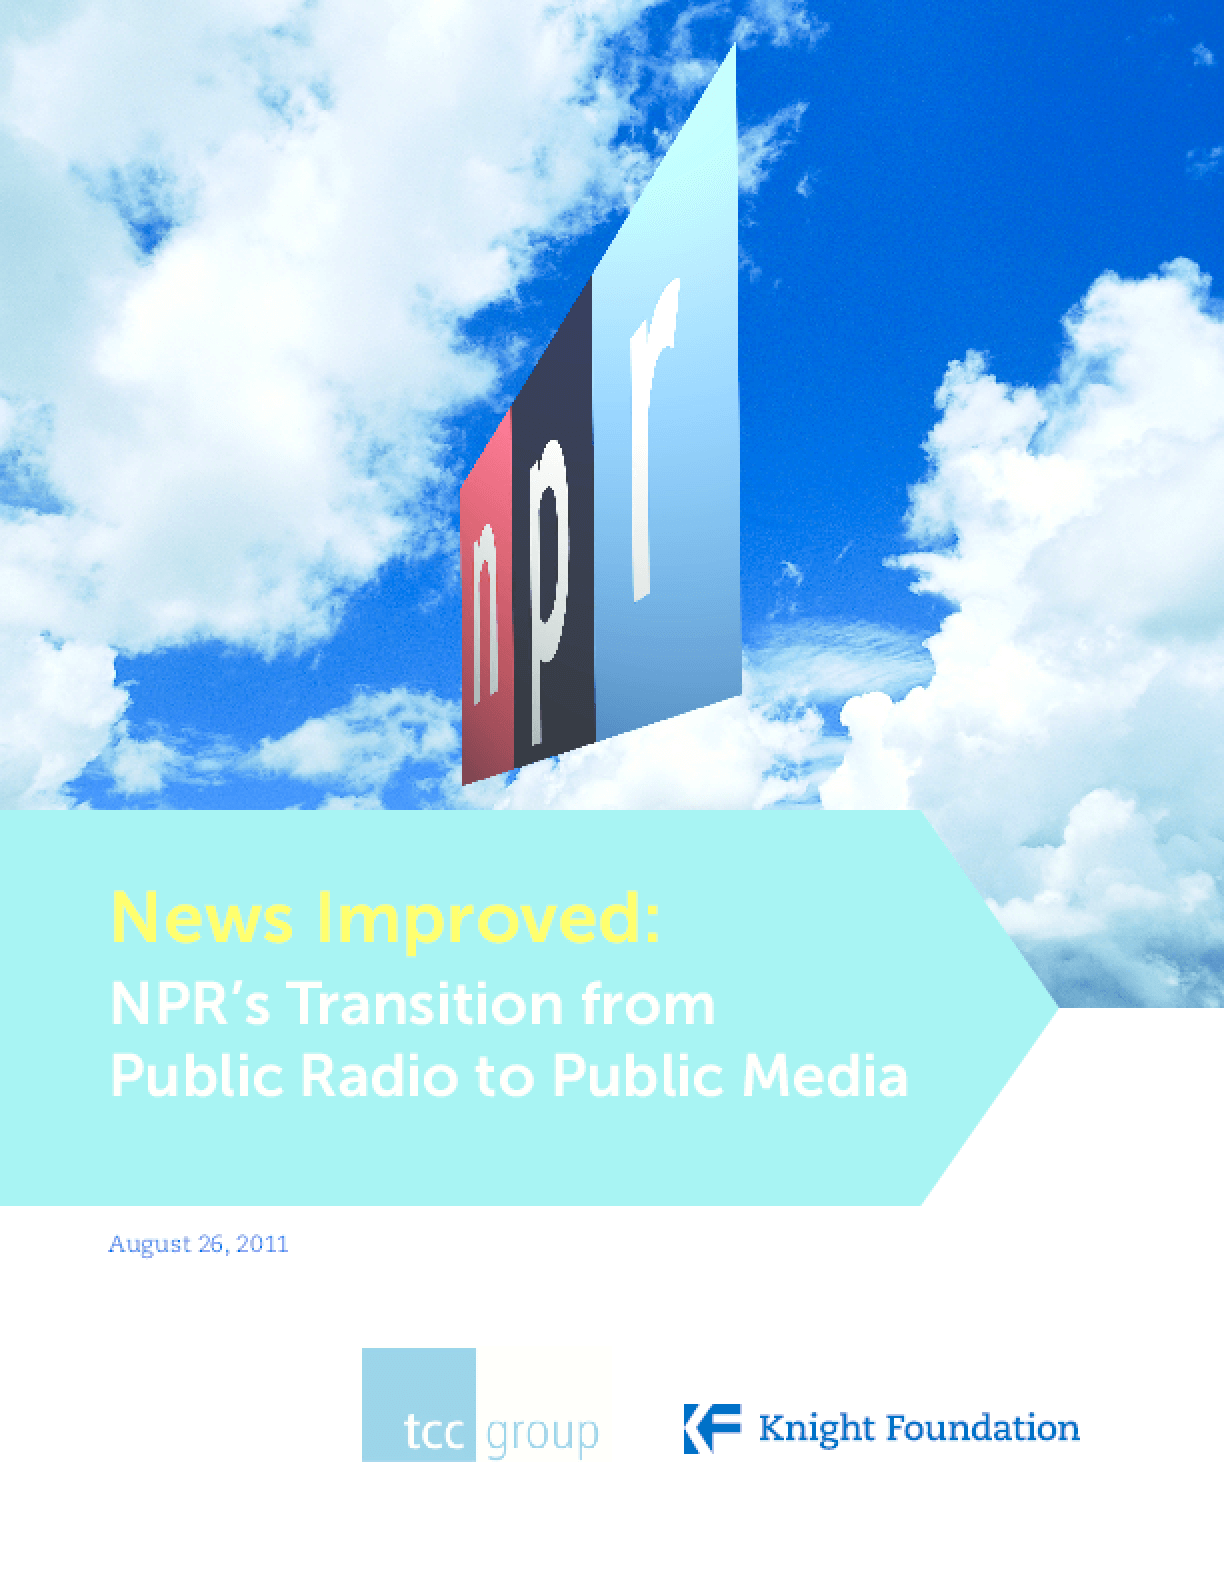 News Improved: NPR's Transition from Public Radio to Public Media